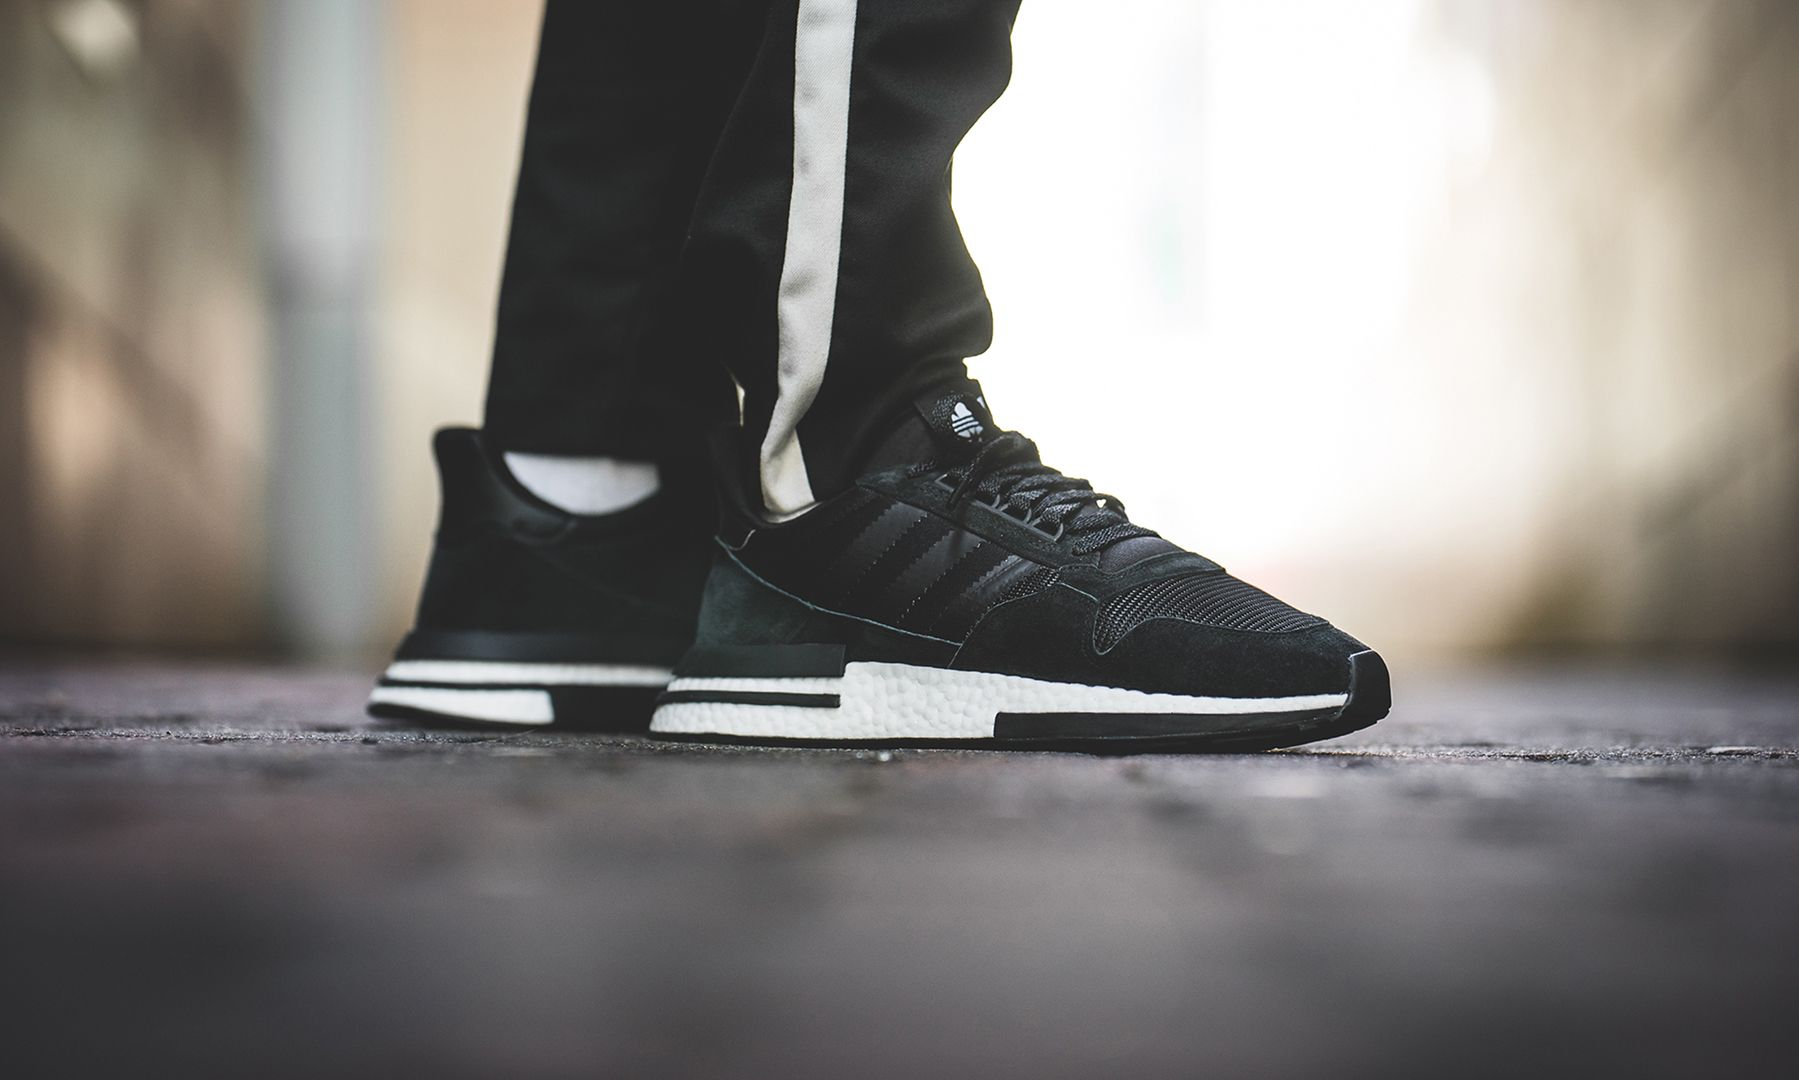 The adidas ZX 500 RM is available in our online shop